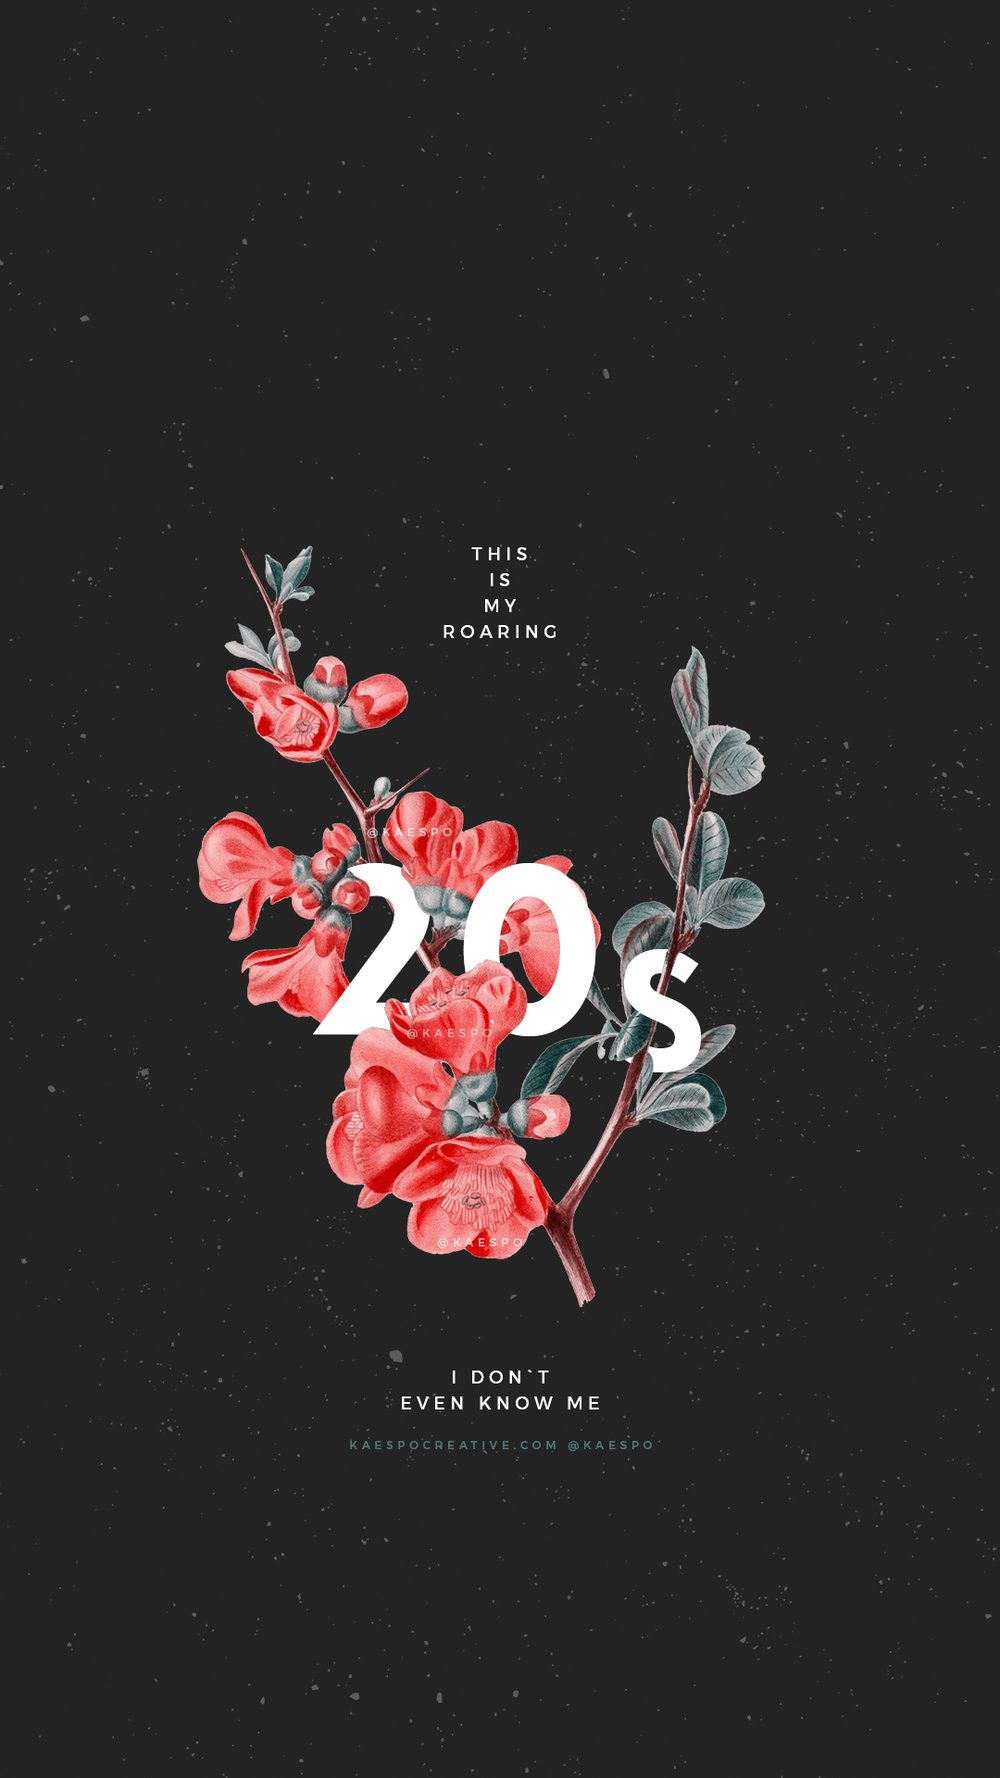 Wallpapers No. 427 - Pray For The Wicked Floral Photo Backgrounds — KAESPO Design